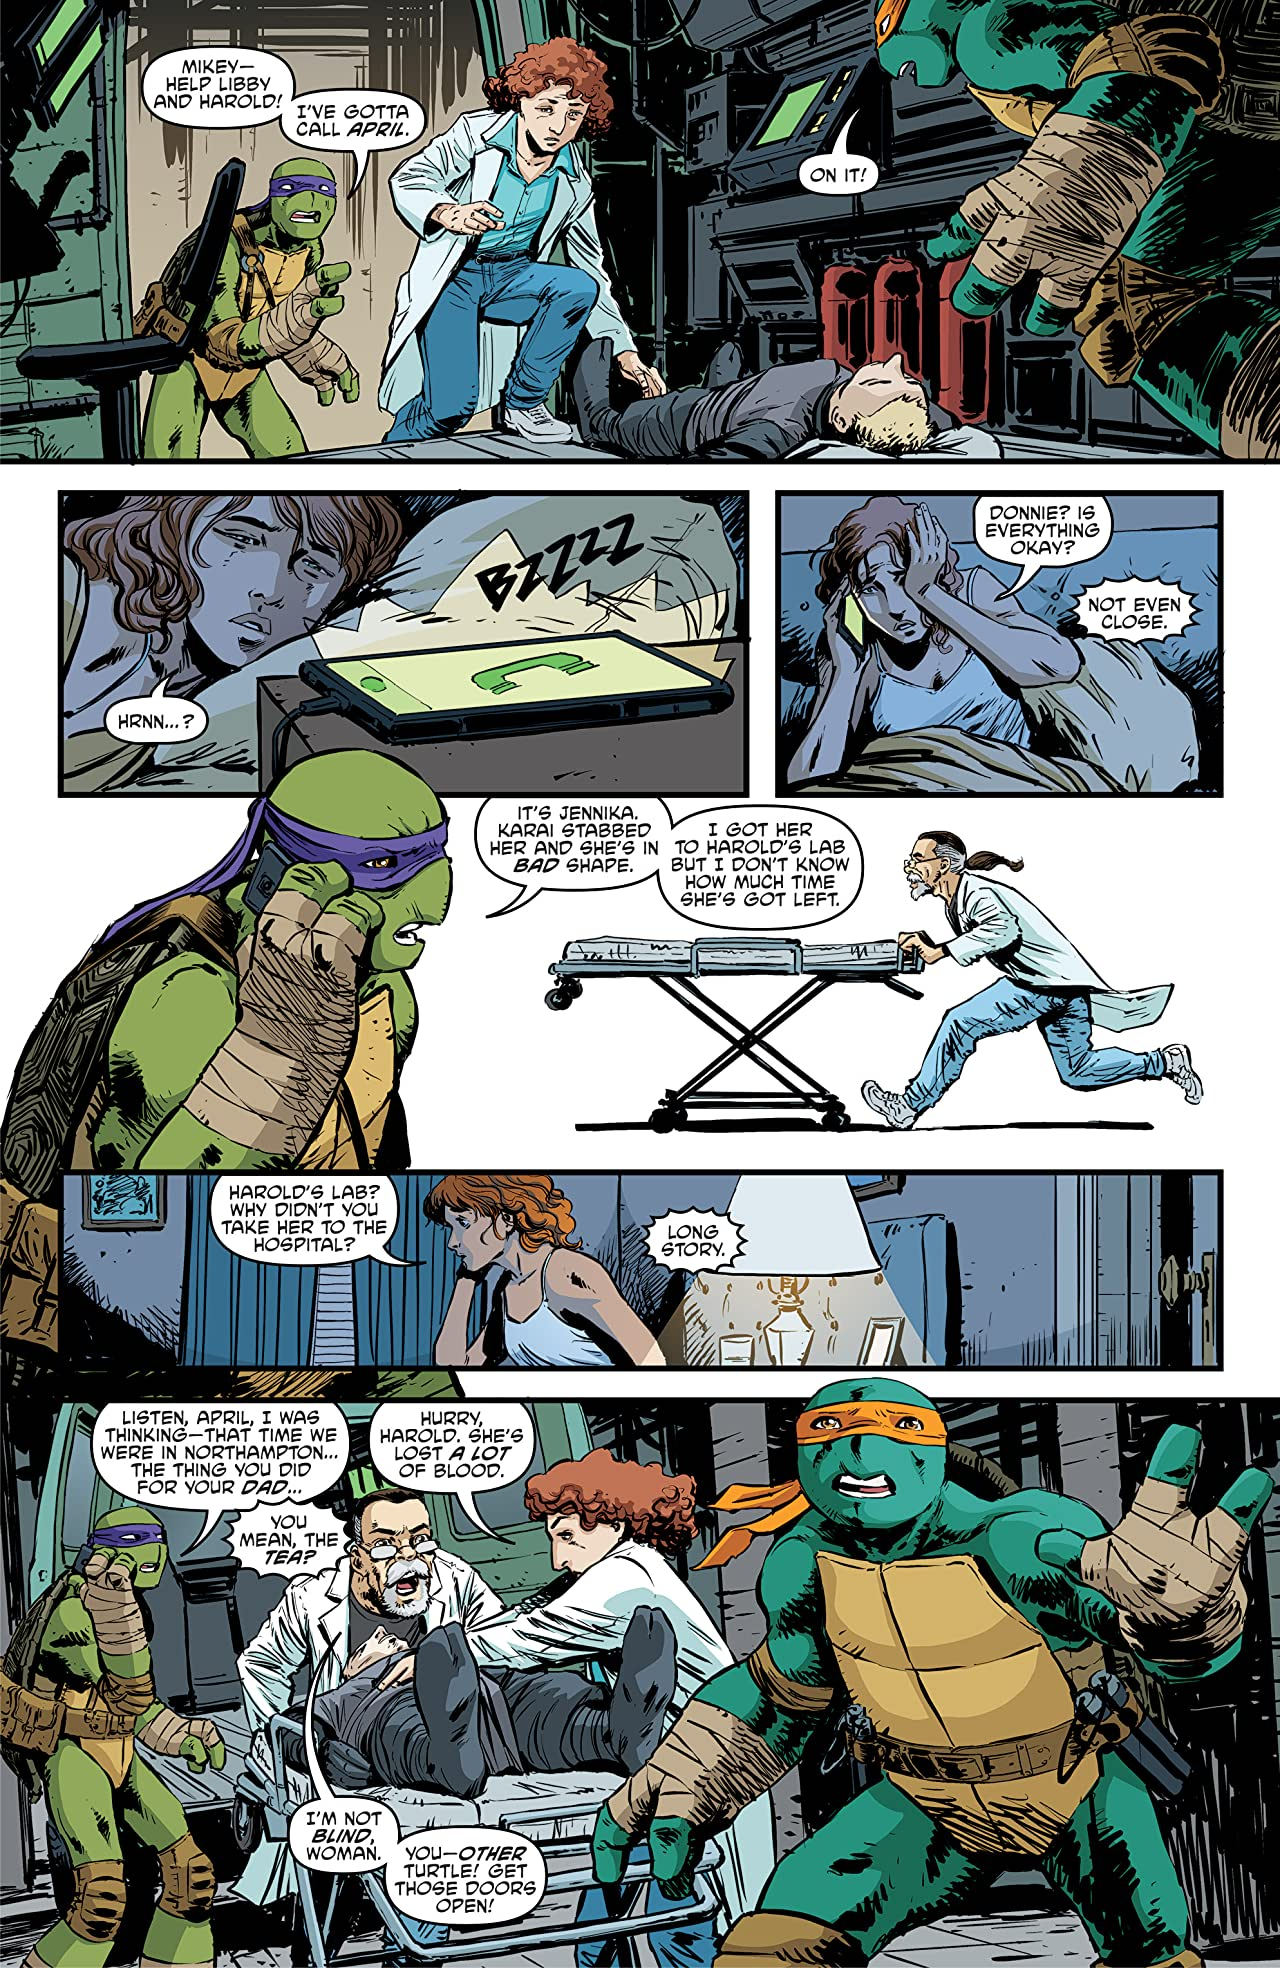 Teenage Mutant Ninja Turtles #94